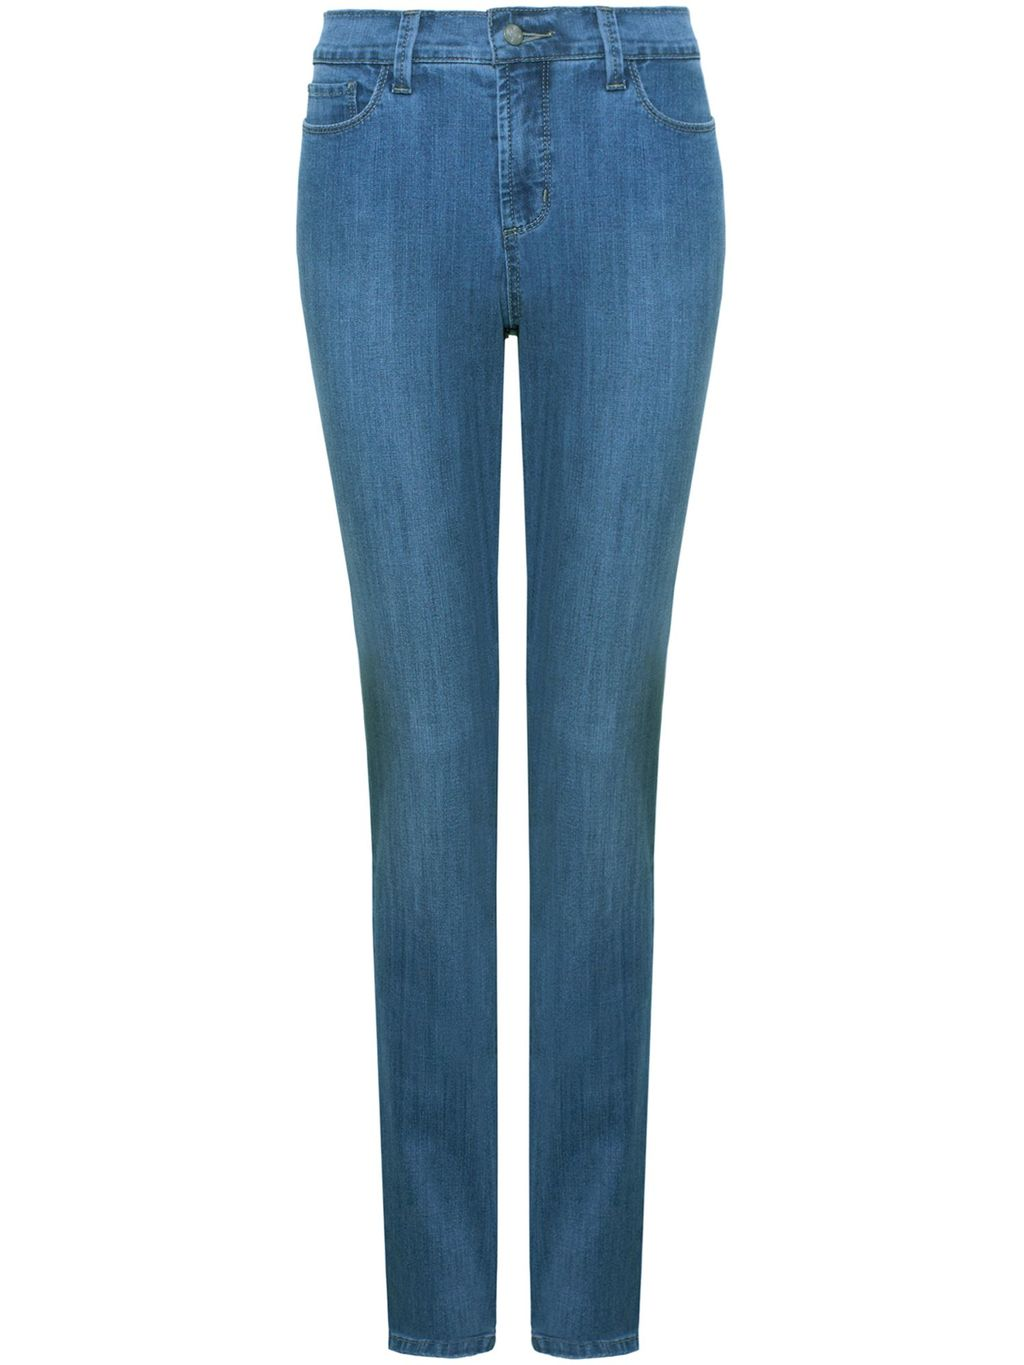 Samantha Slim, Blue - length: standard; pattern: plain; pocket detail: traditional 5 pocket; style: slim leg; waist: mid/regular rise; predominant colour: denim; occasions: casual; fibres: cotton - stretch; texture group: denim; pattern type: fabric; season: s/s 2016